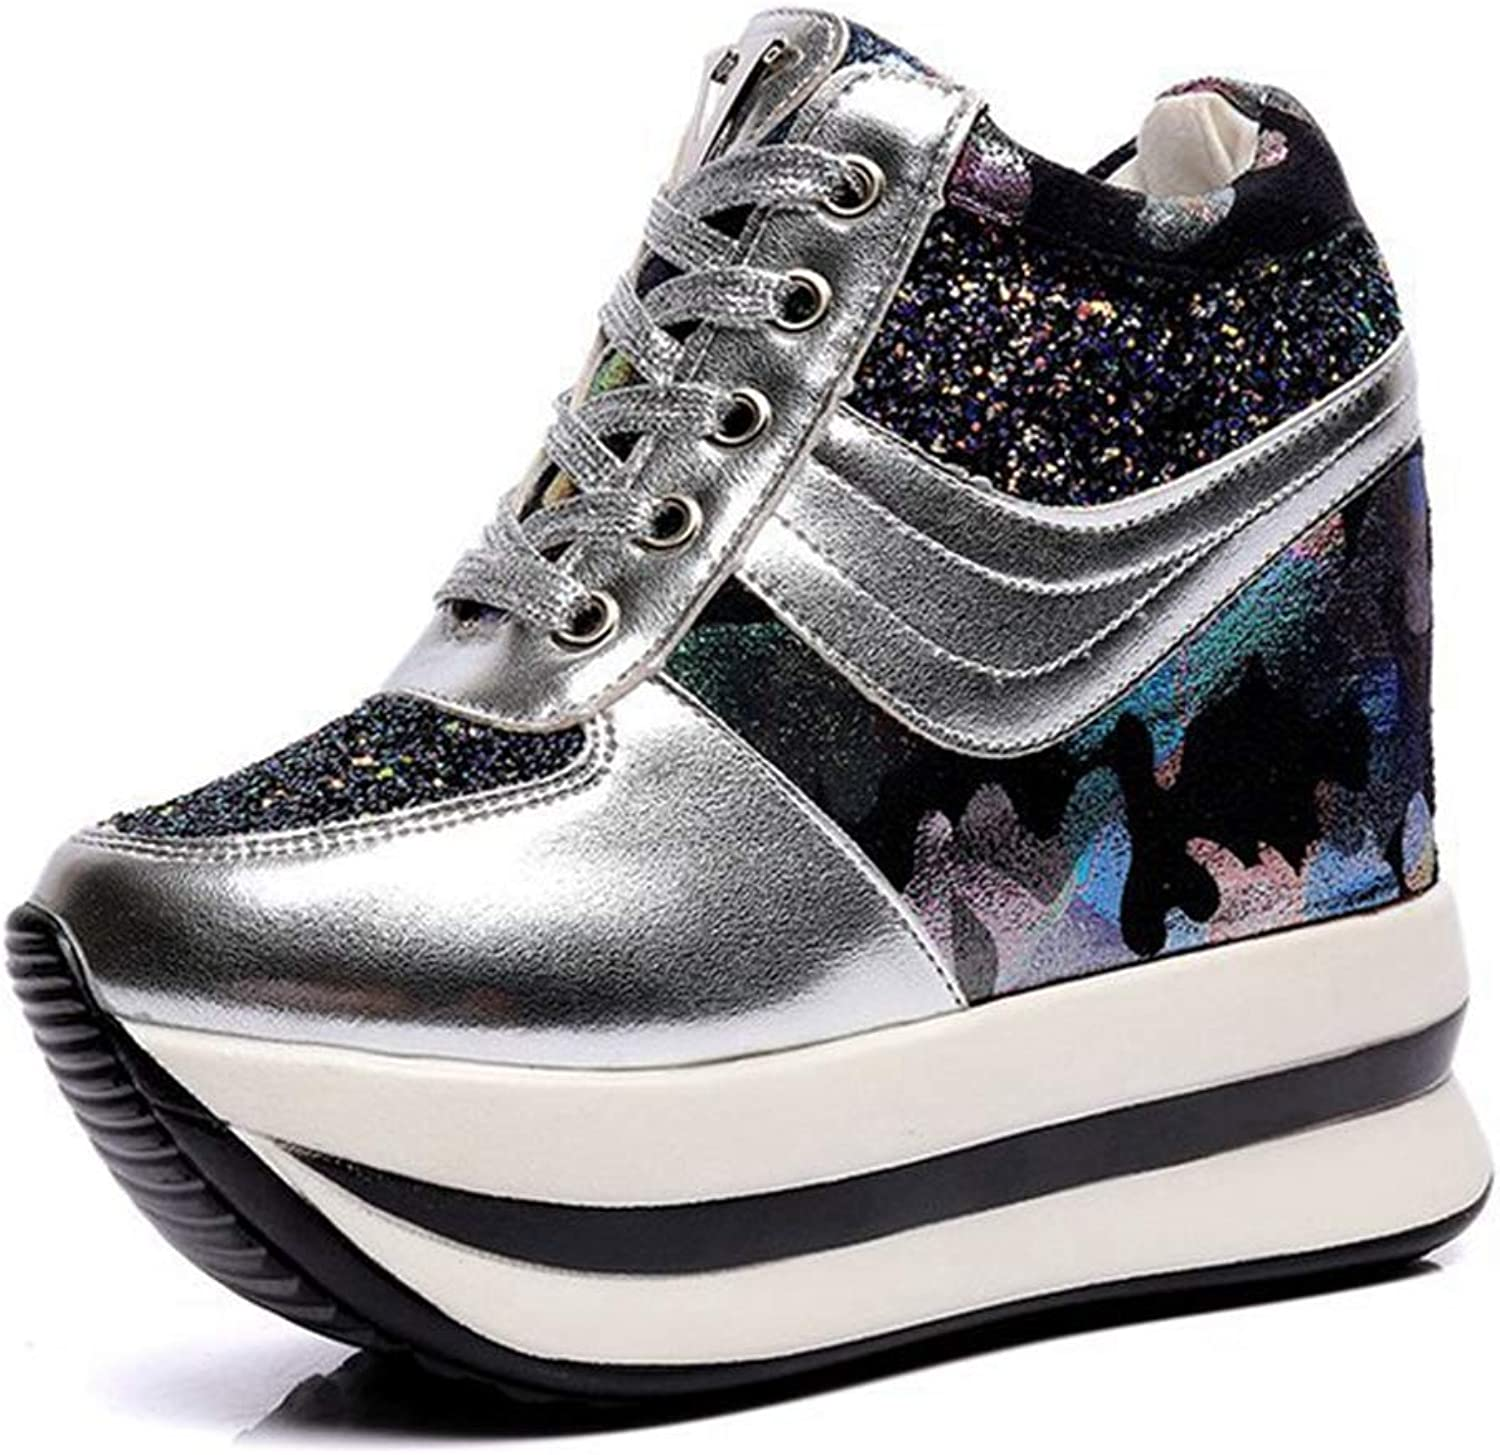 CYBLING Womens Hidden Wedges High Top Sneakers Fashioh High Heels Height Increase Elevator Sport shoes